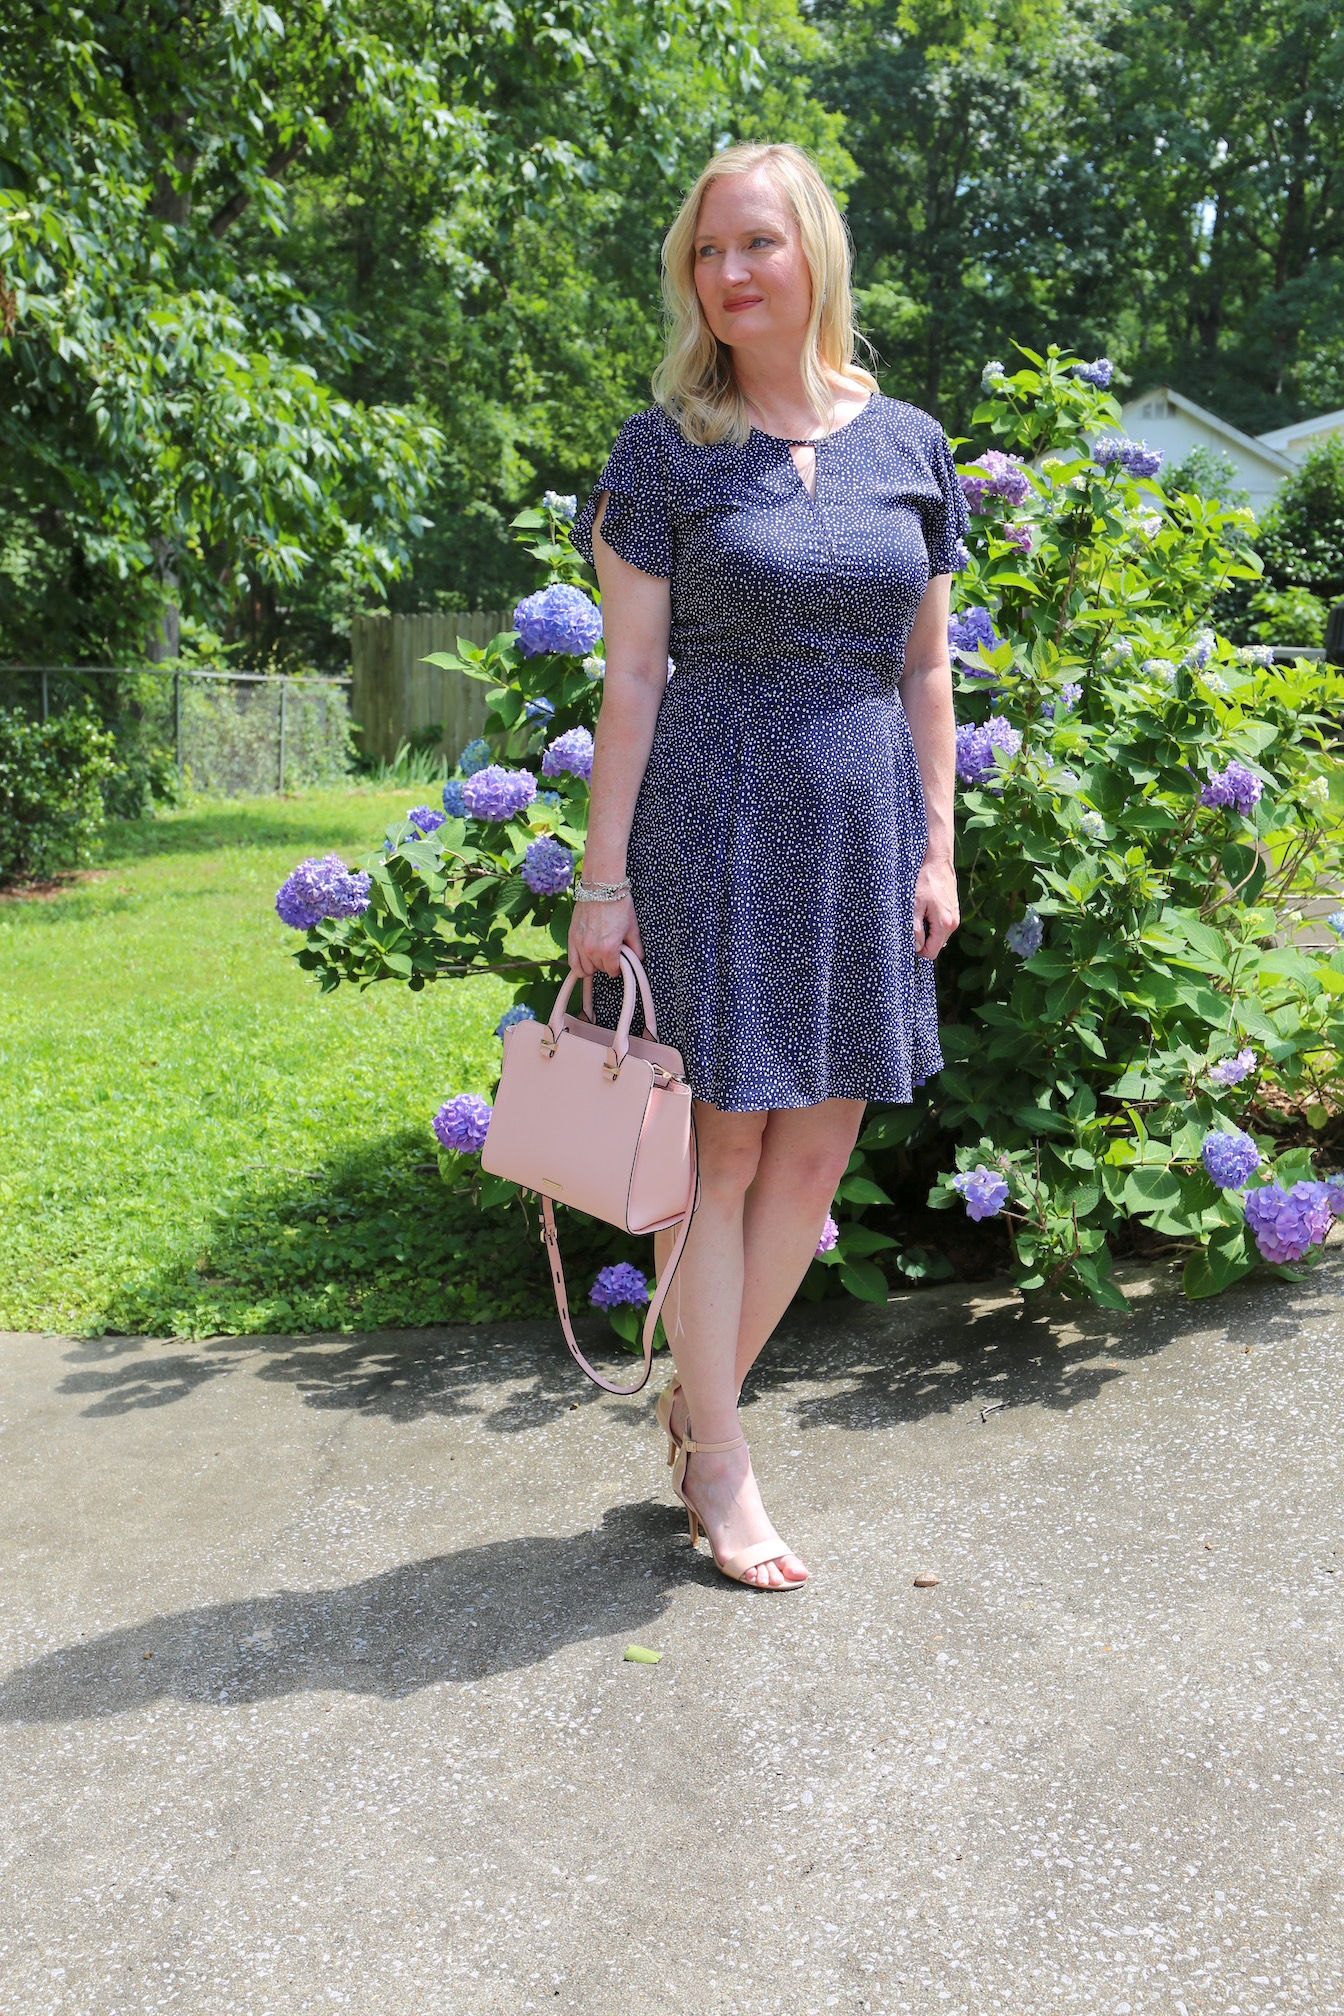 What I Wore To a Summer Wedding 2